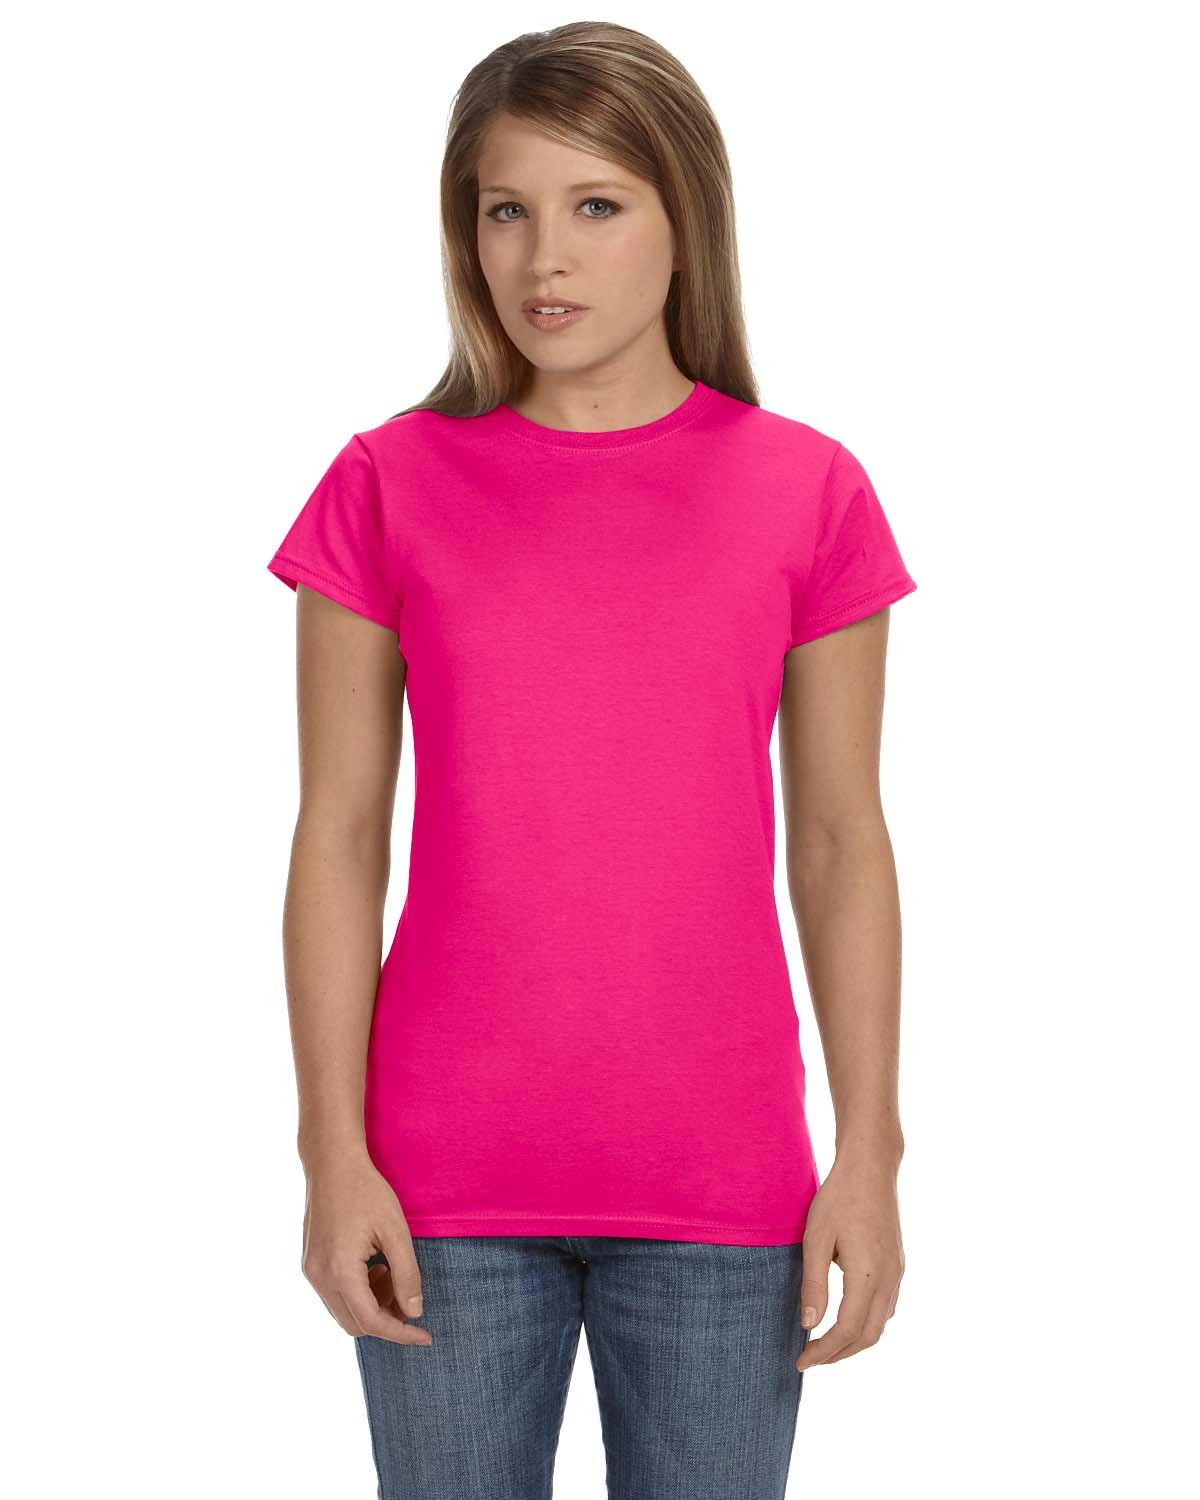 Gildan Ladies' Softstyle® 4.5 oz Fitted T-Shirt ANTQUE HELICONIA